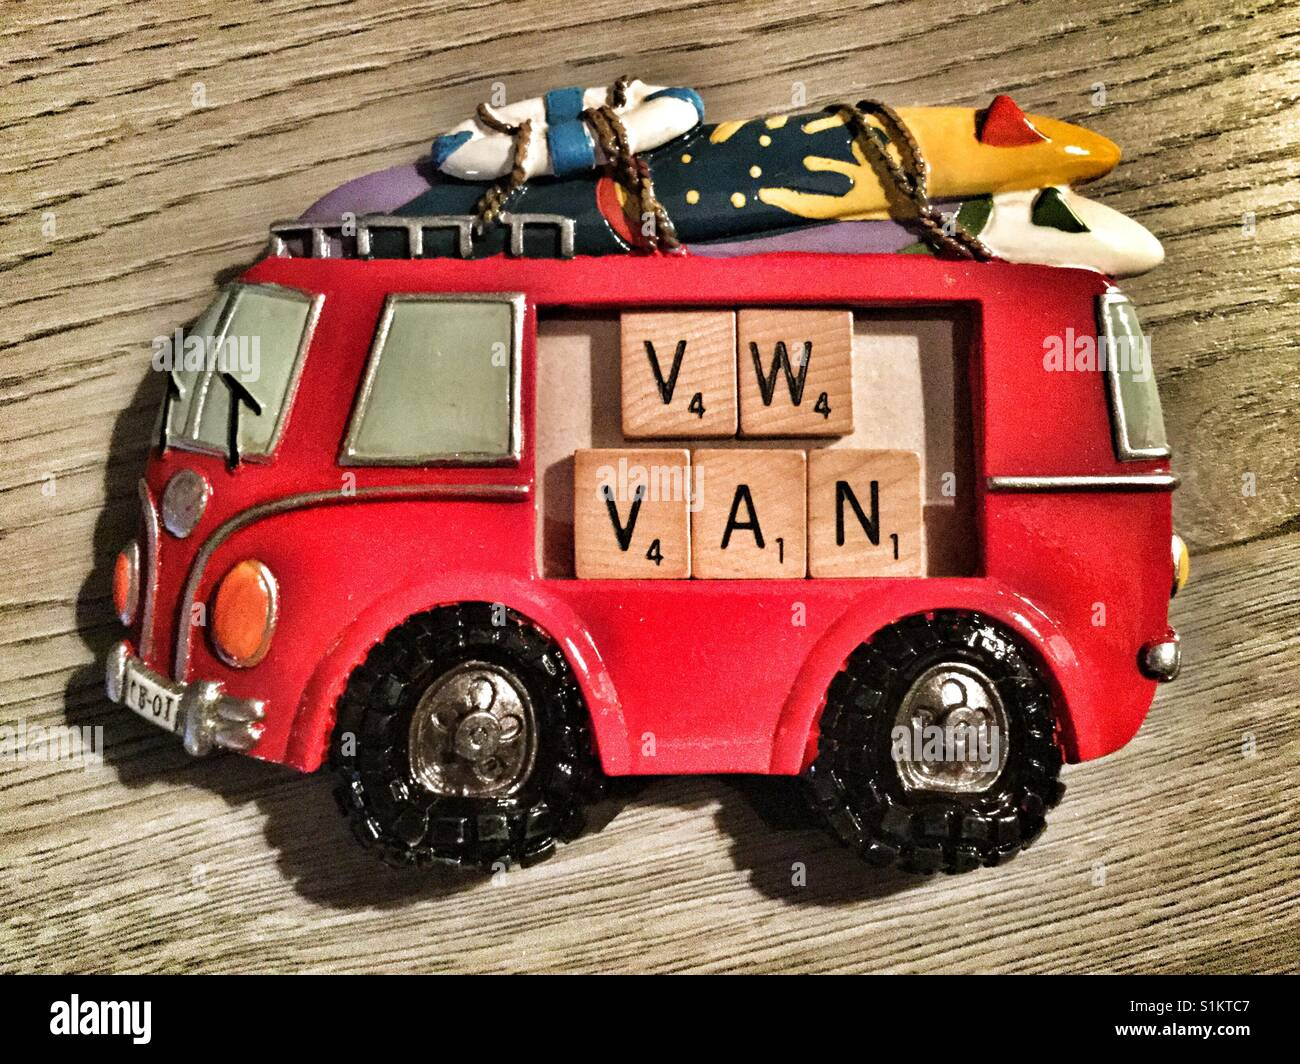 VW van picture frame. - Stock Image